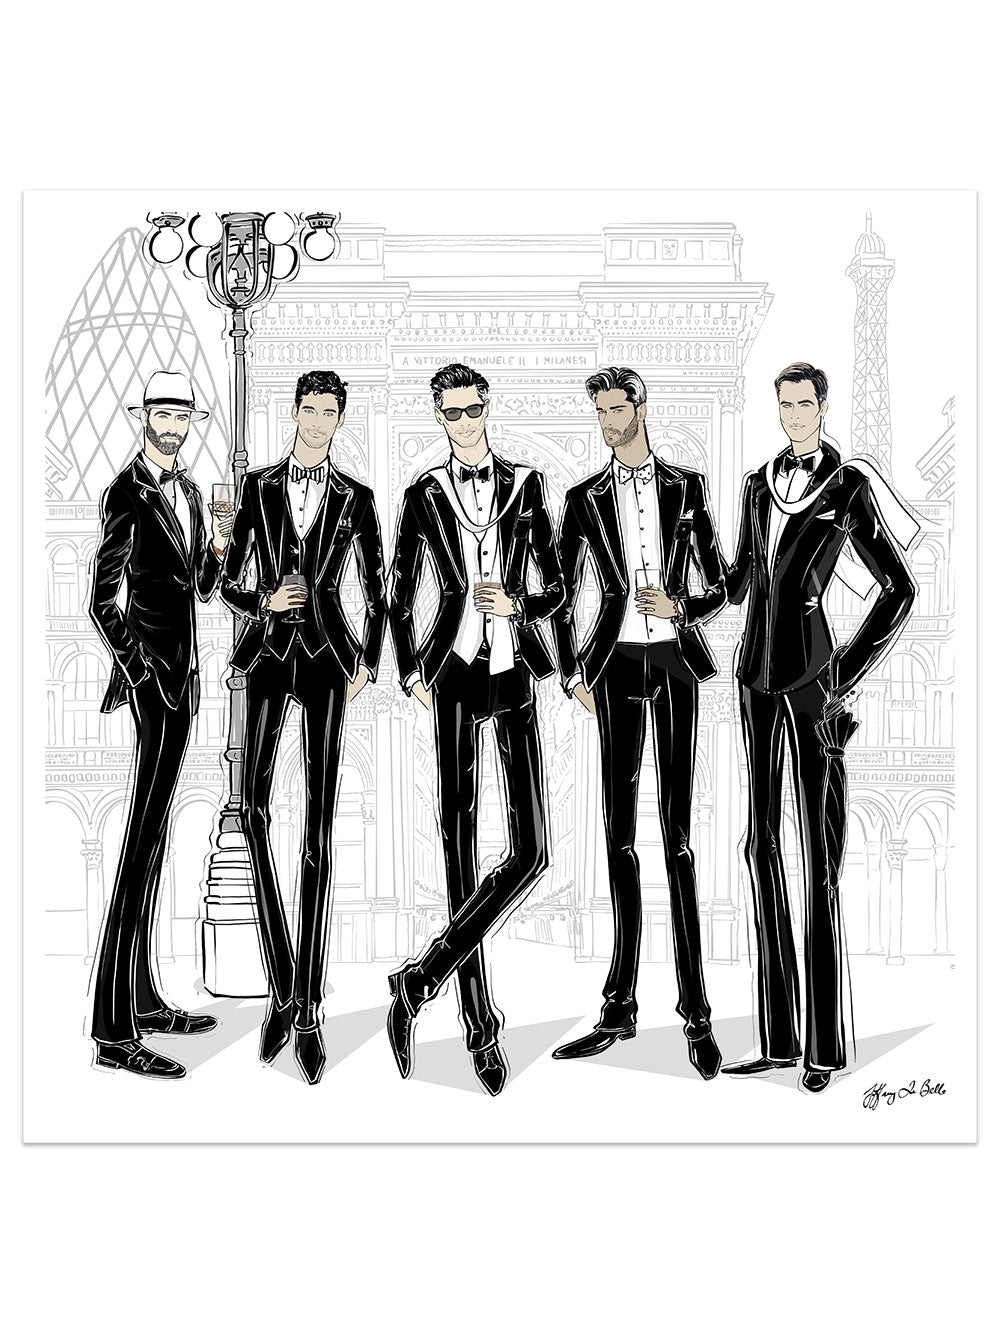 Mens Fashion Week - Illustration - Limited Edition Print - Tiffany La Belle